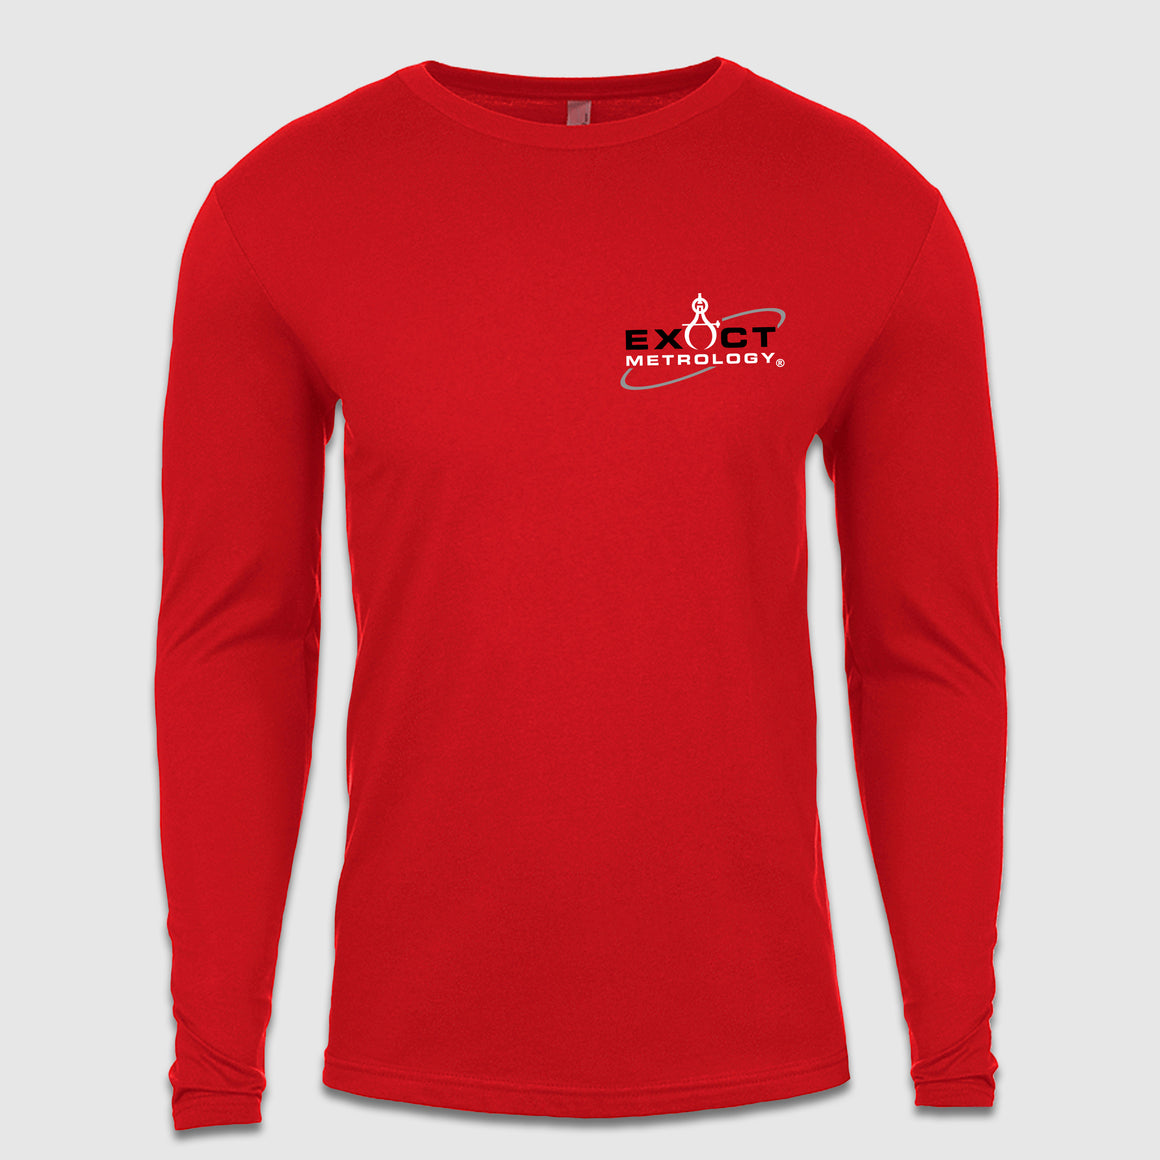 Exact Metrology Small Chest Logo Long Sleeve Tee - Cincy Shirts